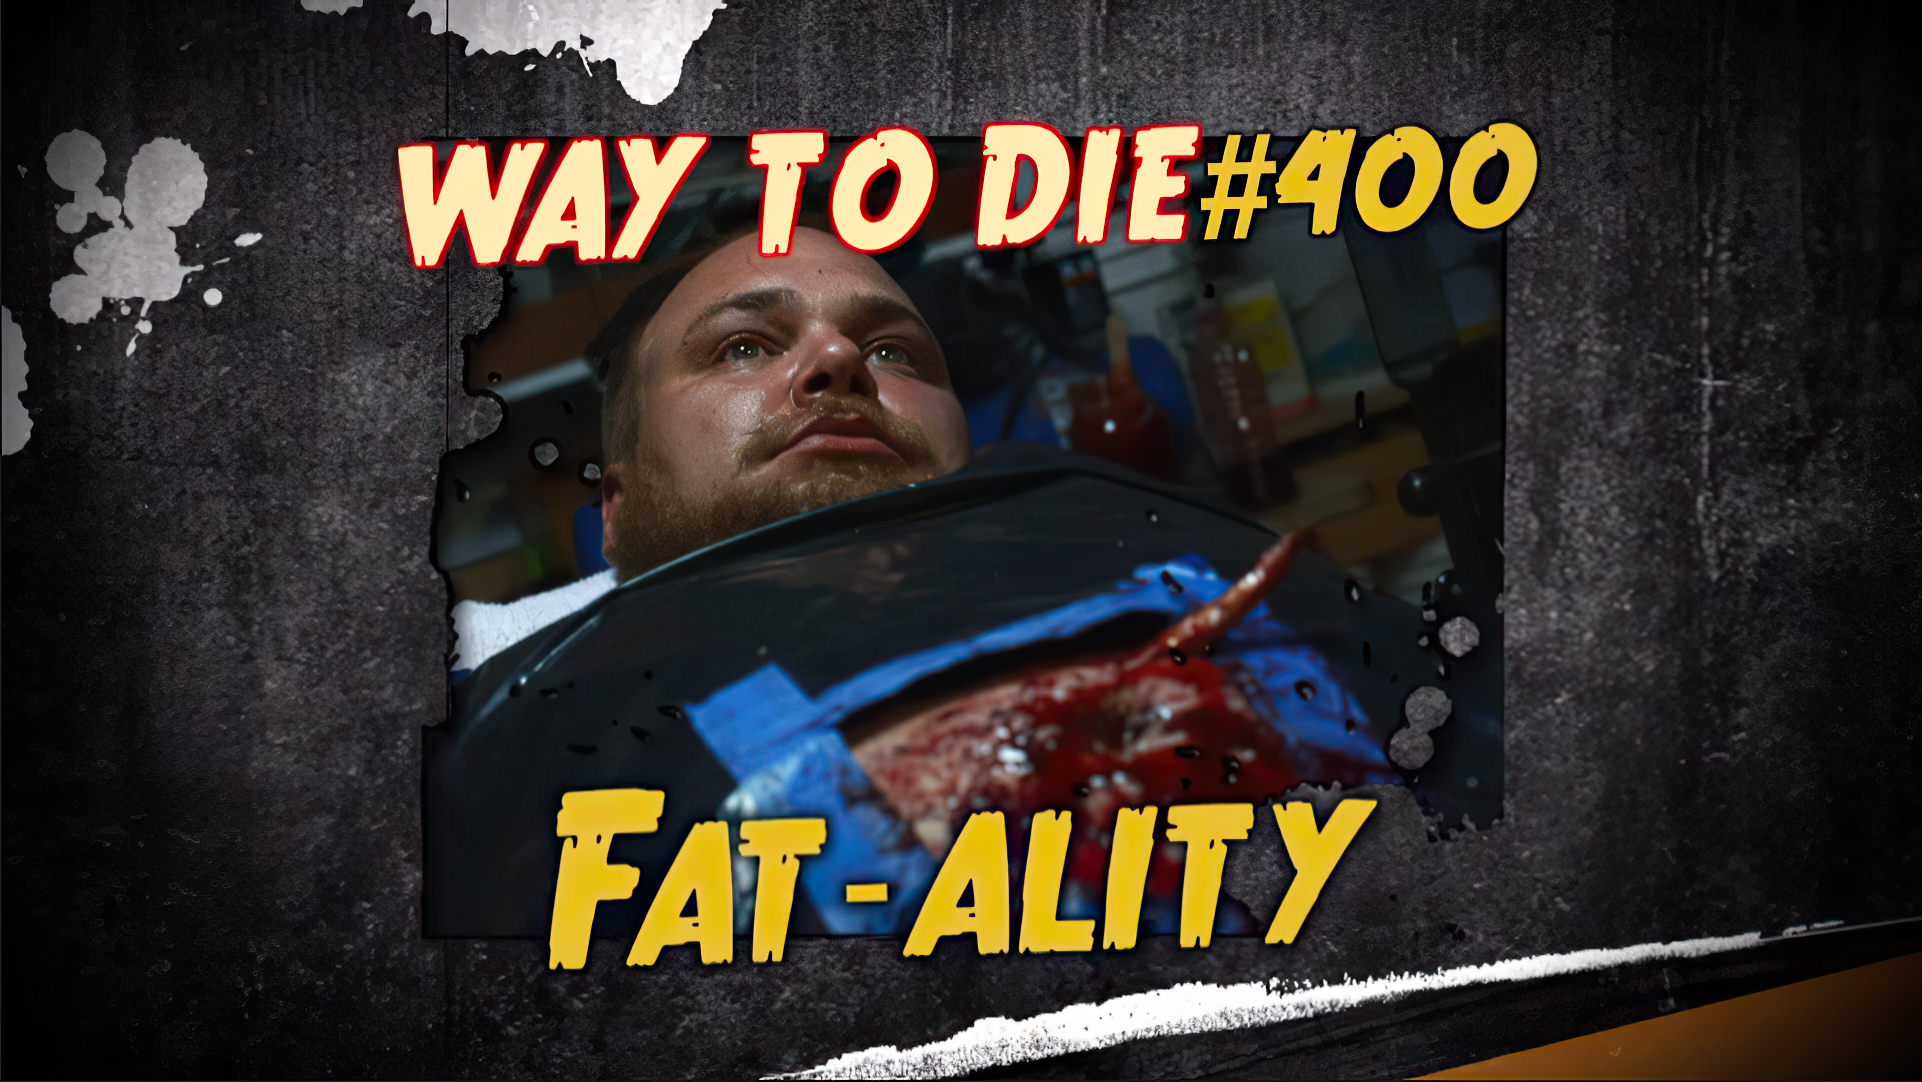 Fat ality 1000 ways to die wiki fandom powered by wikia its not hard to figure out liposuction in your own garage is not a good idea dave didnt have a lot of brains but he sure had a lot of guts solutioingenieria Choice Image